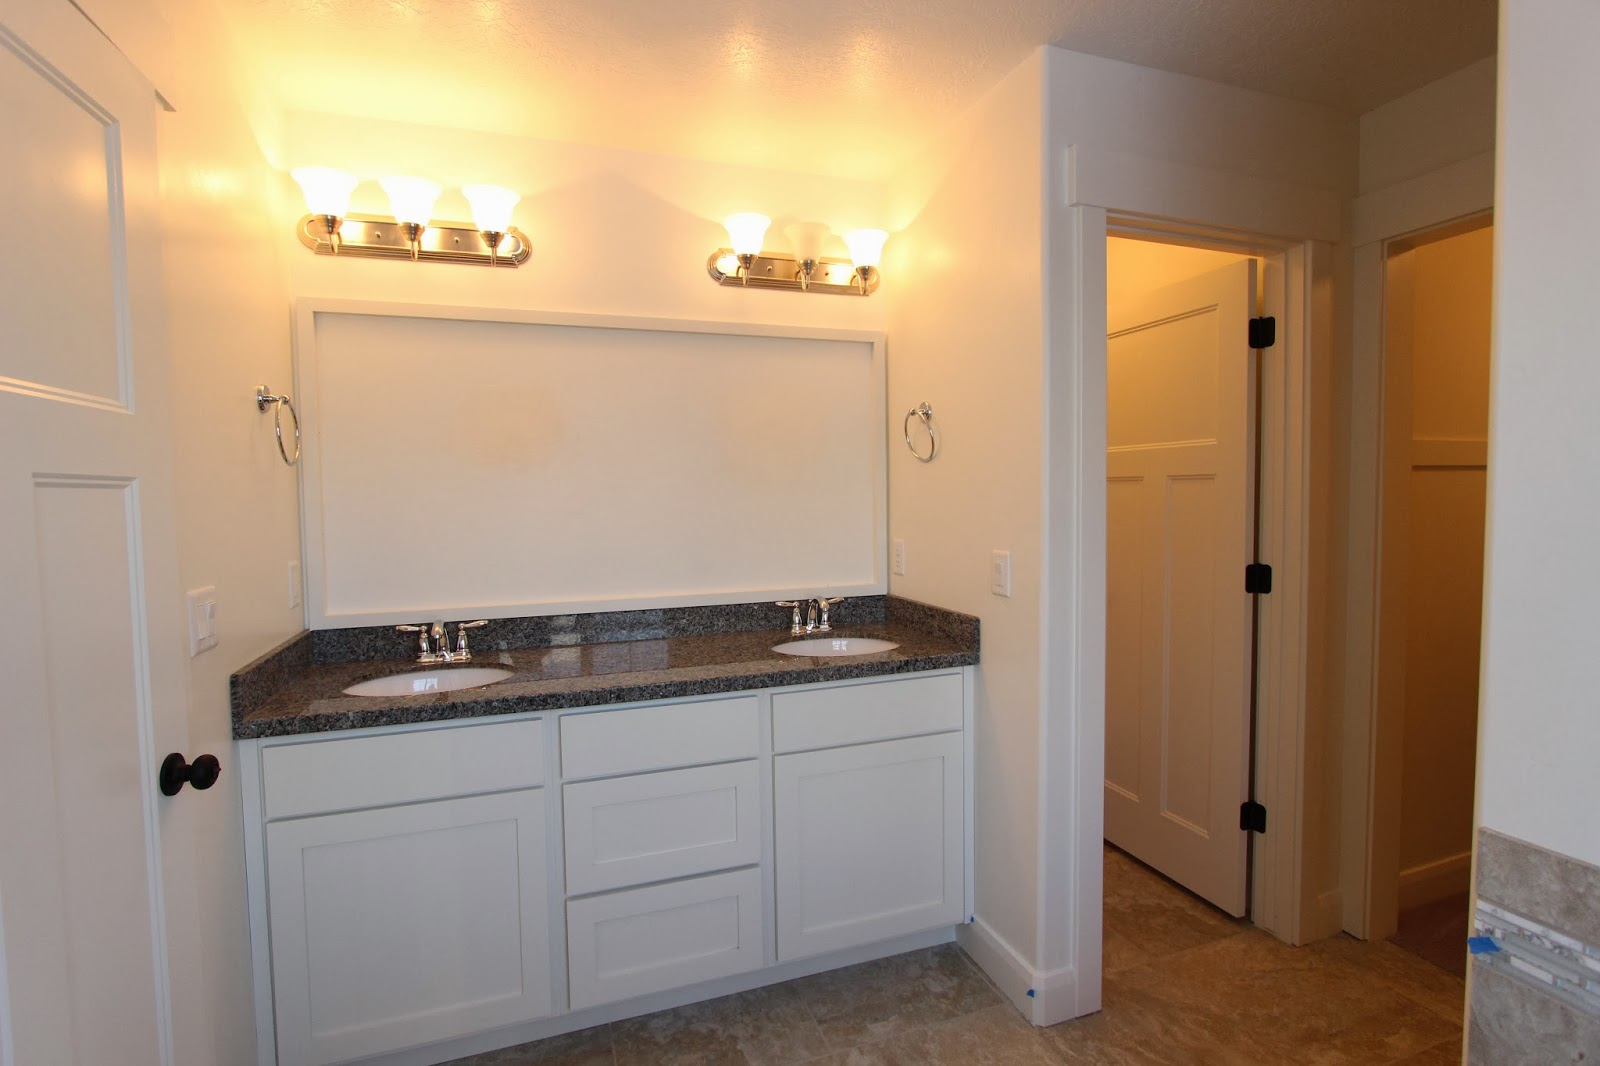 Vanity Lights Shine Up Or Down : Summit Construction - Brand New Custom Homes: February 2014